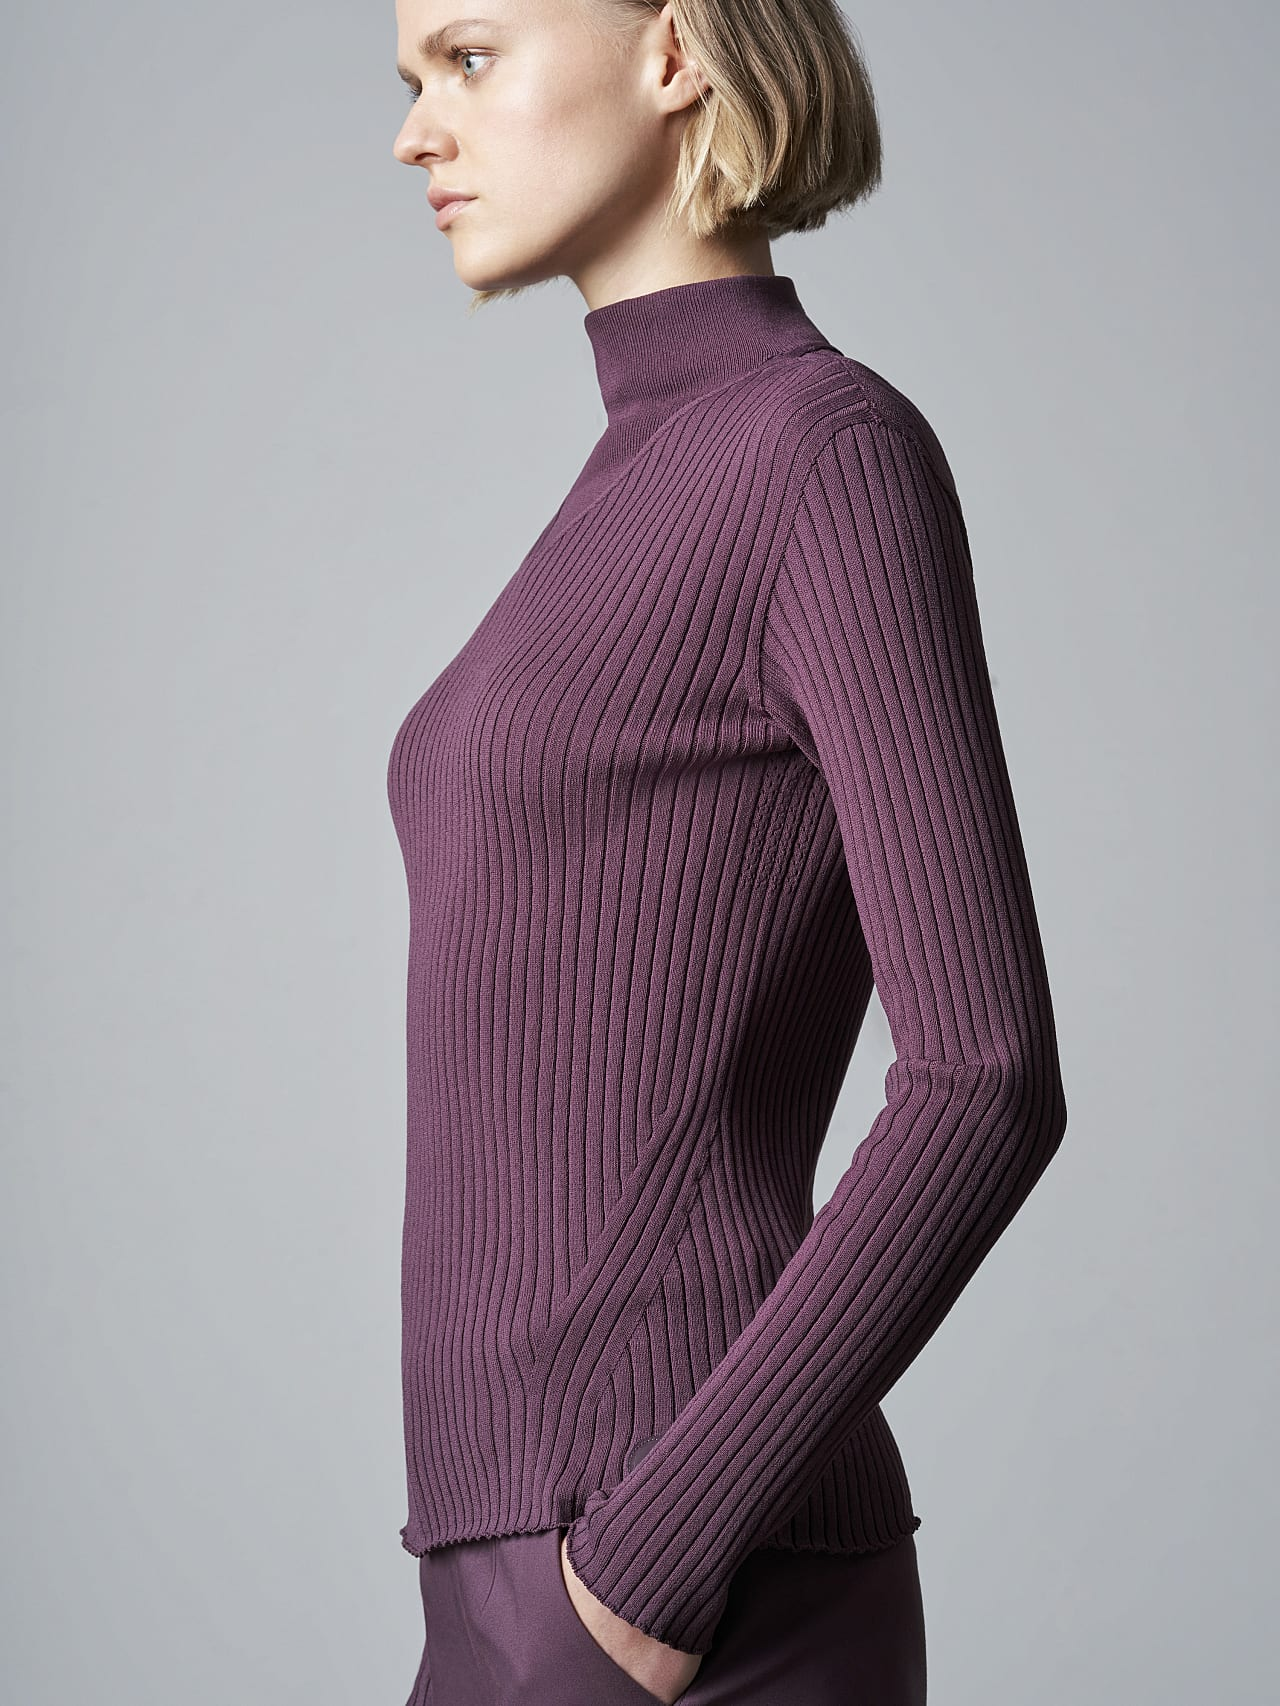 FAXEE V1.Y5.02 Seamless 3D Knit Mock-Neck Jumper Burgundy scene7.view.8.name Alpha Tauri